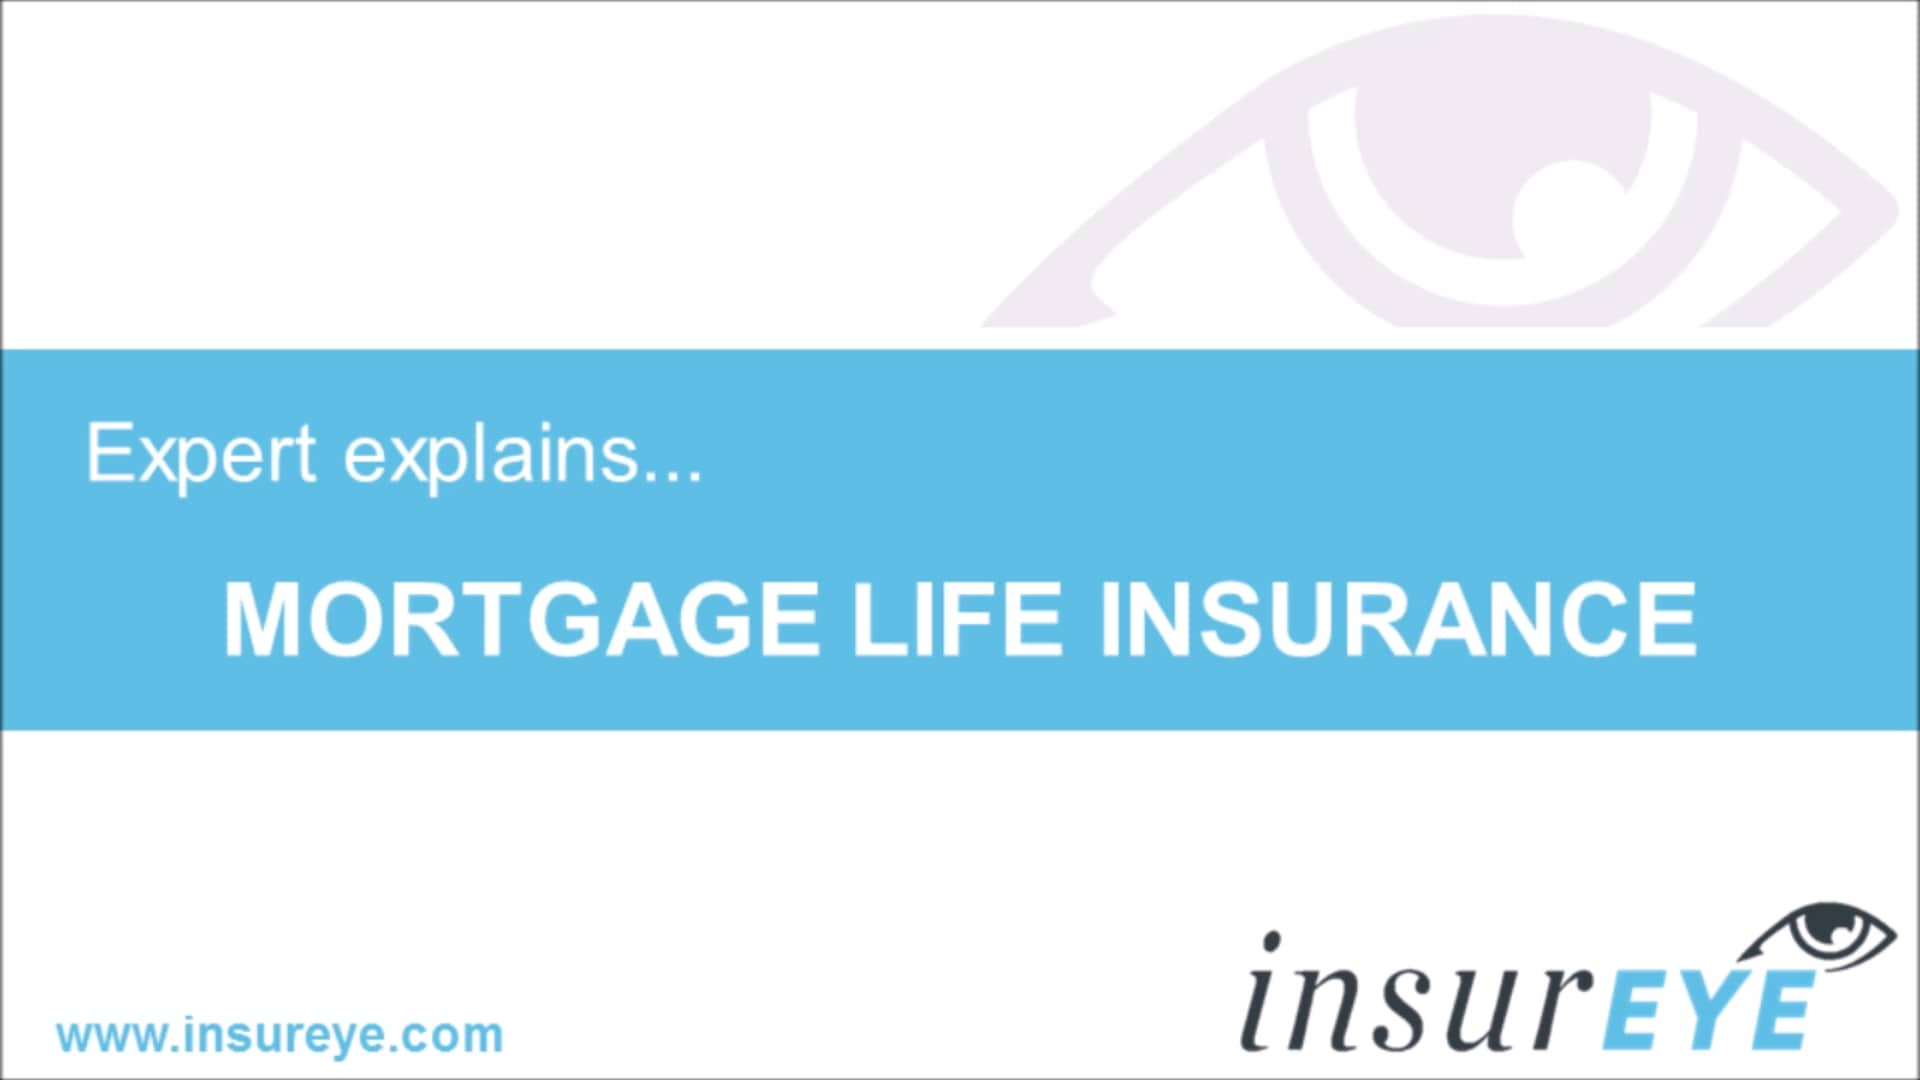 Mortgage Life Insurance Quotes Mortgage Insurance Quotes And Insurance Tips